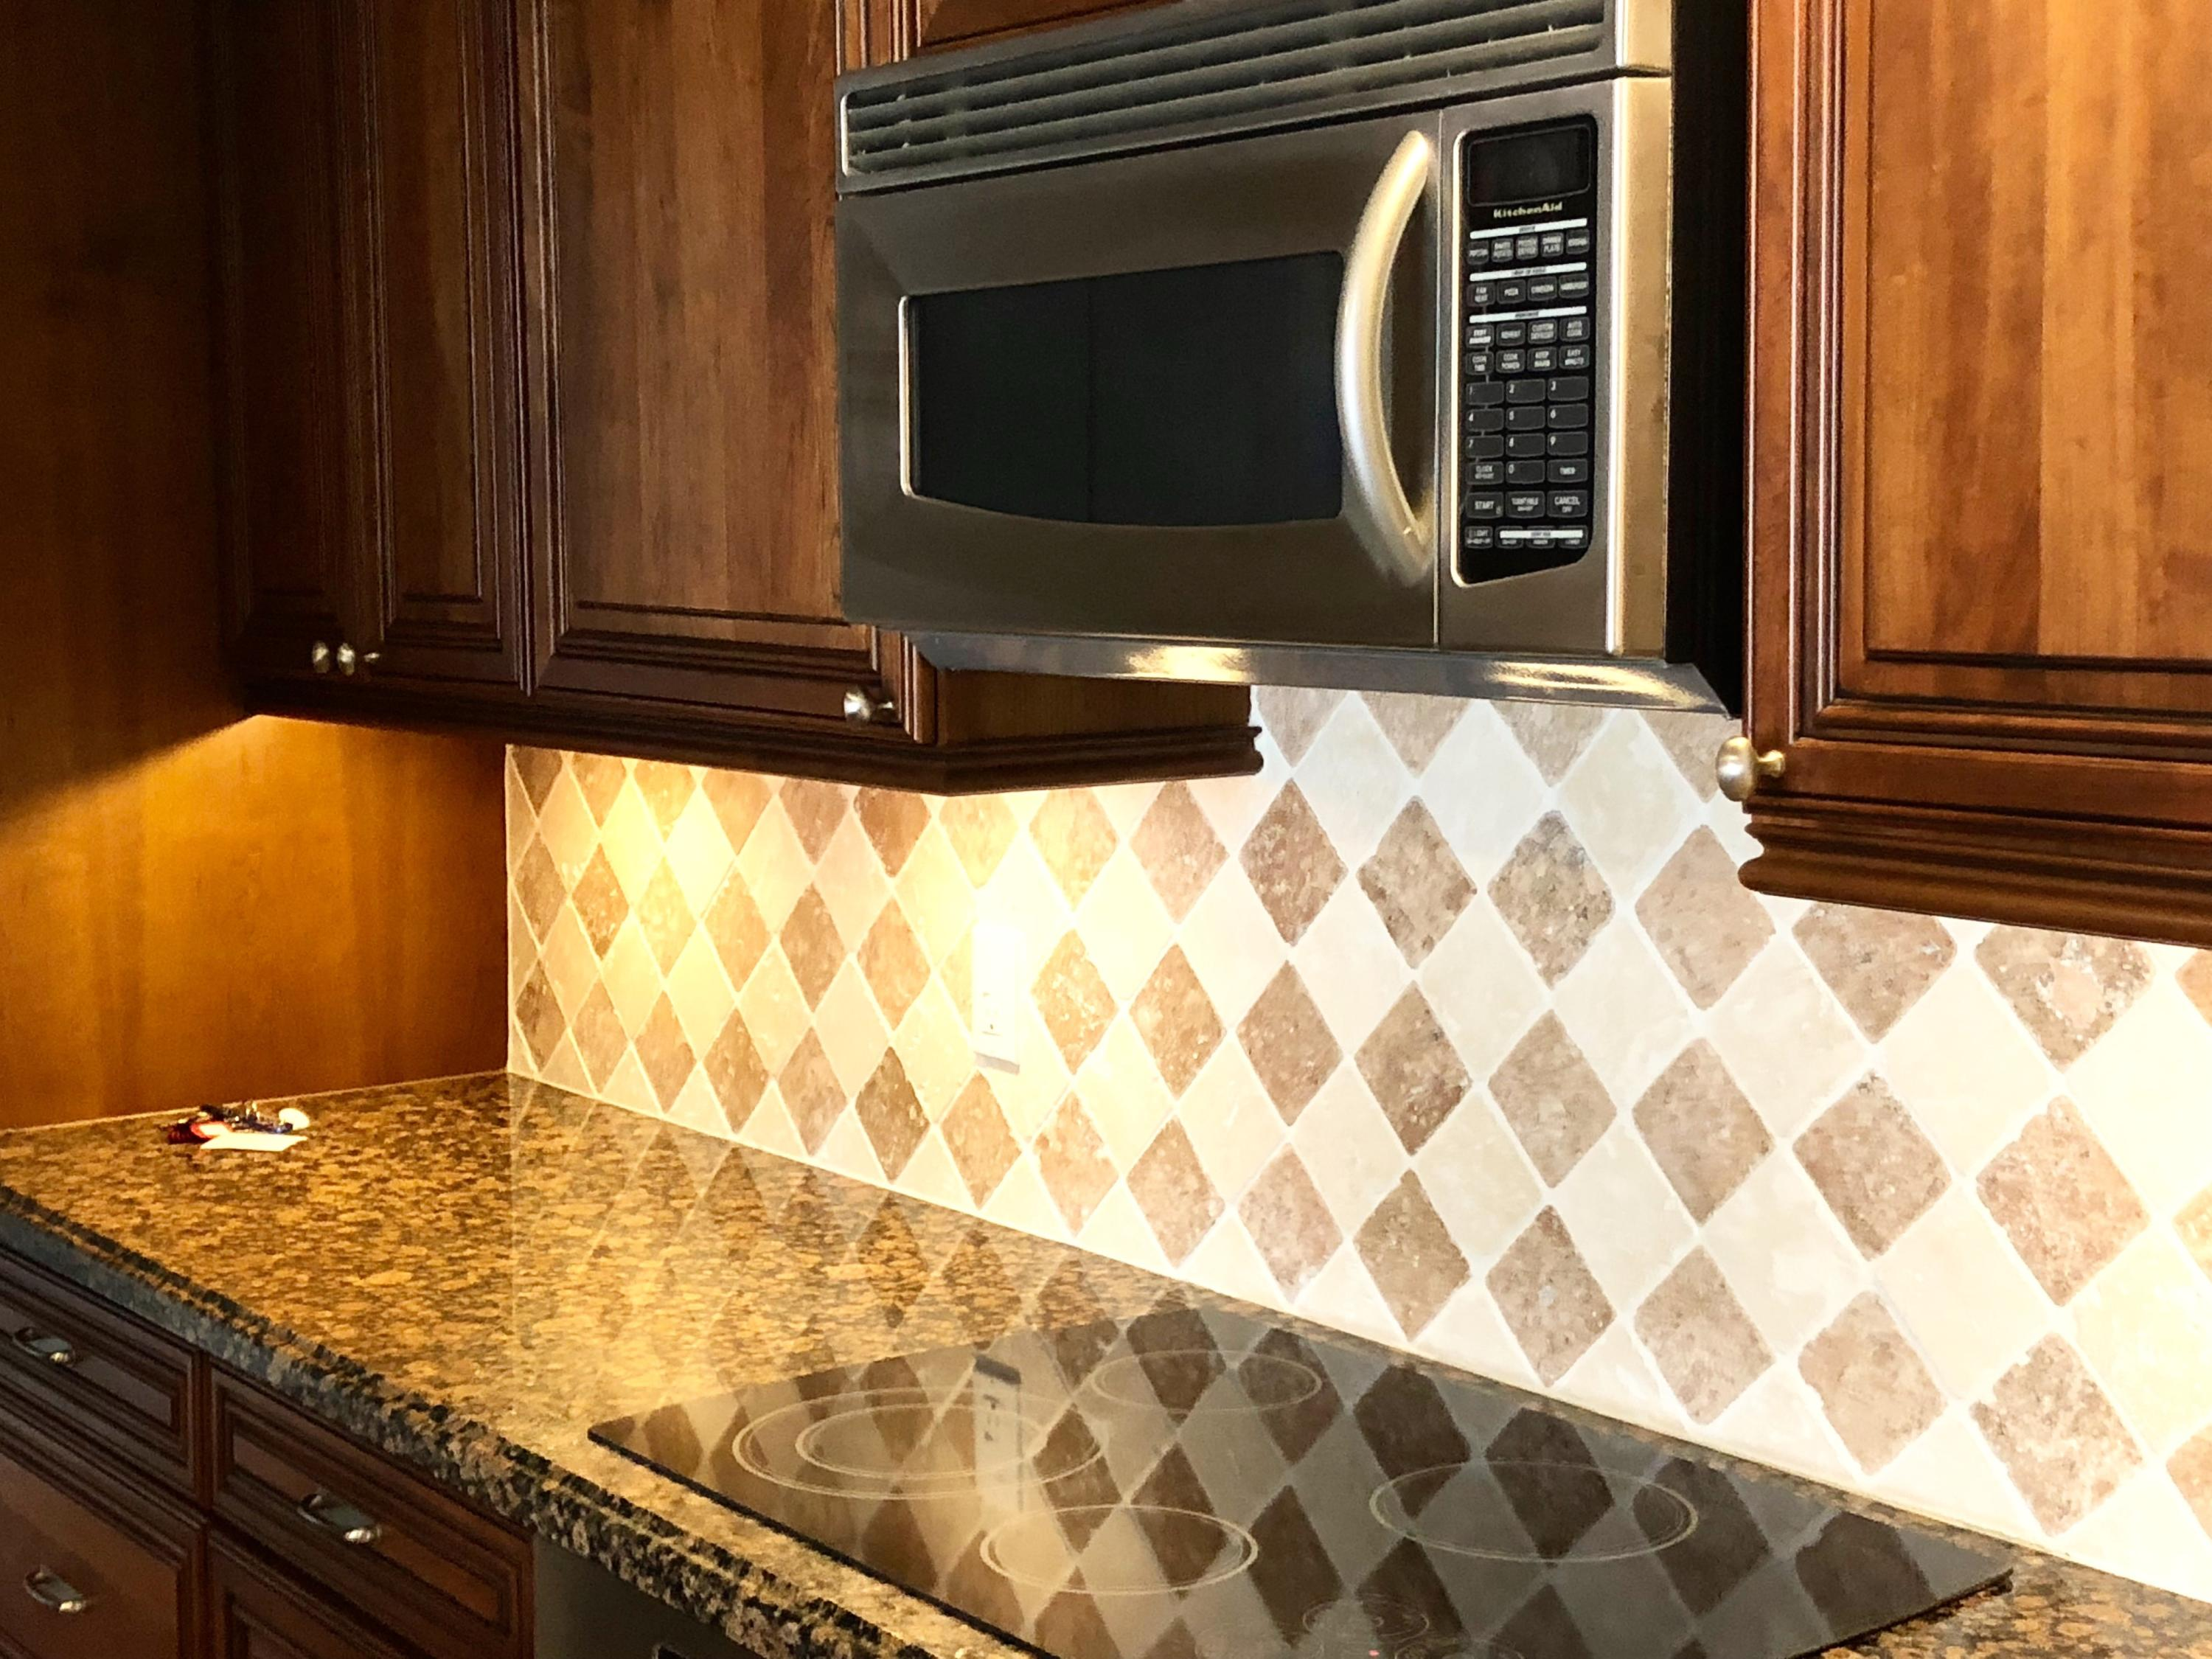 CUSTOM WOOD CABINETRY AND BACKGPLASH